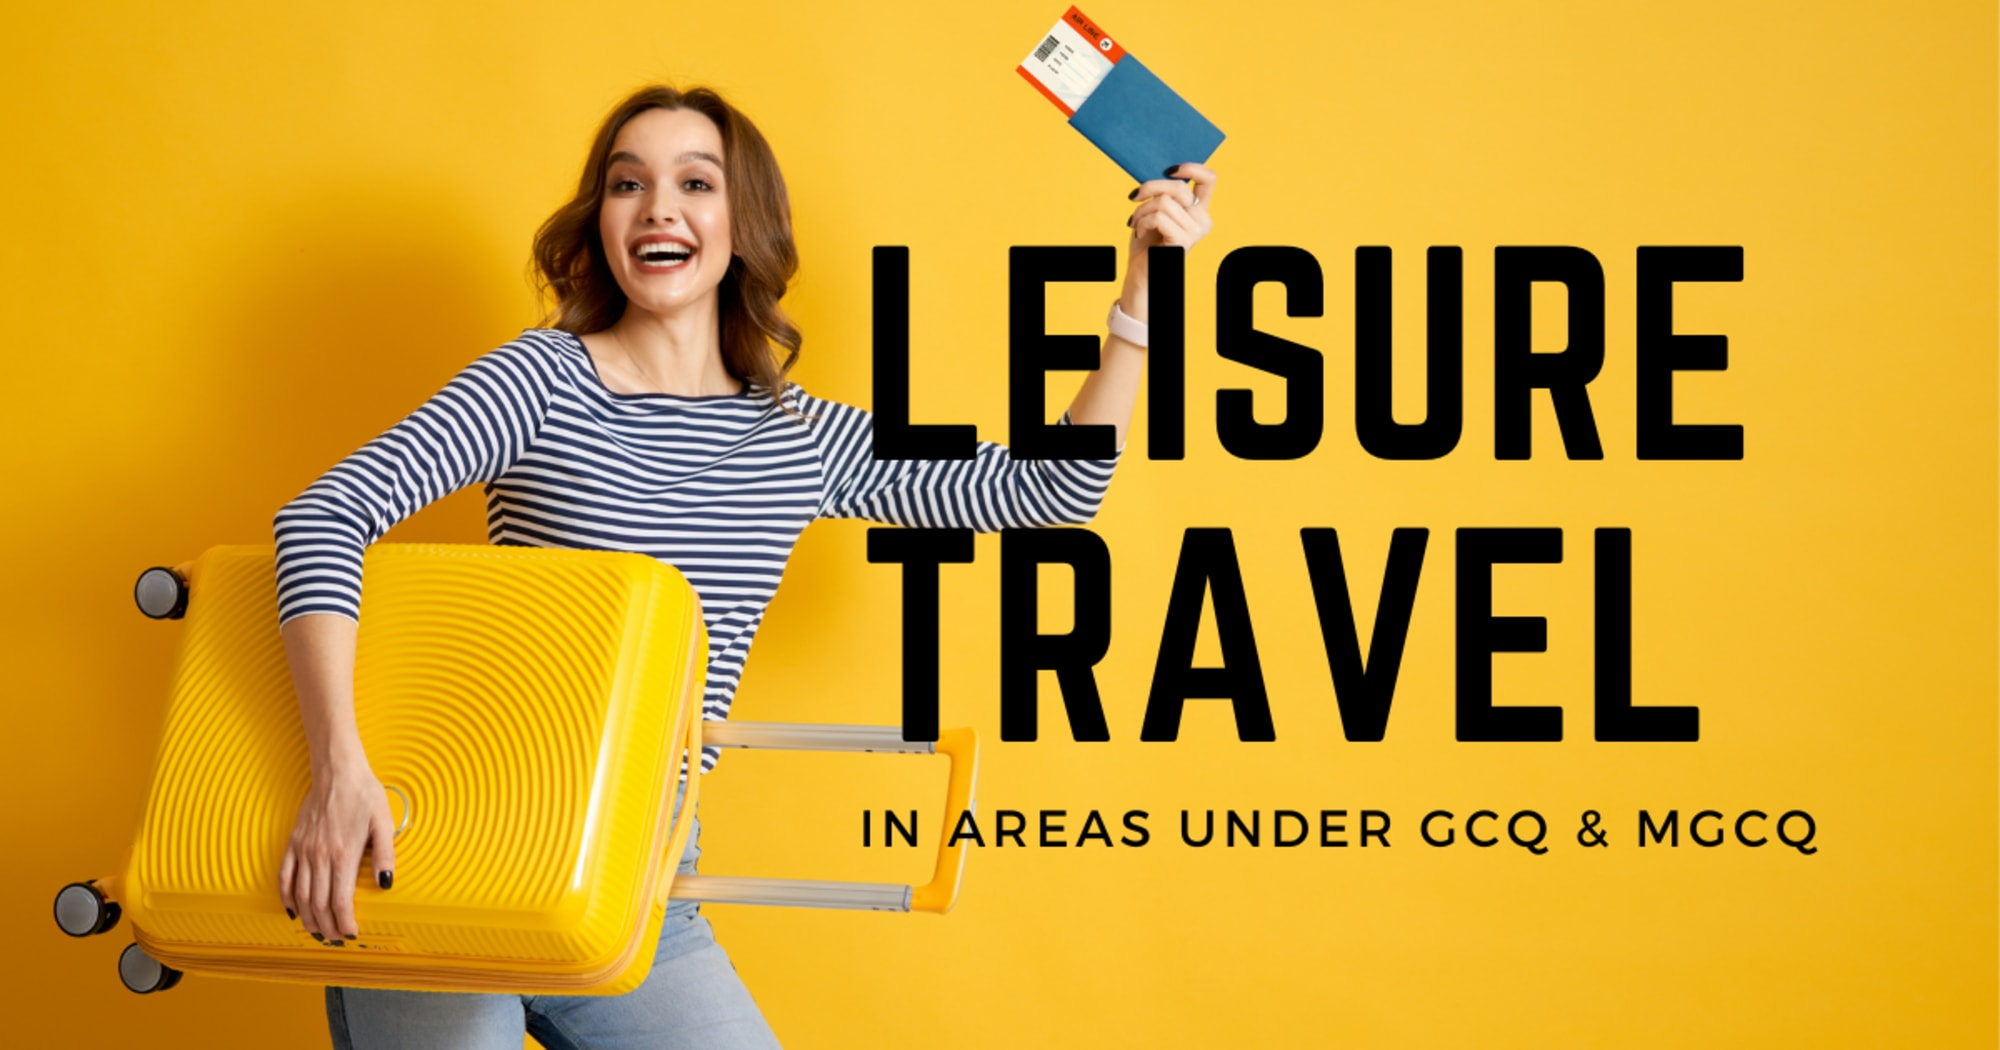 Leisure travel is permitted from NCR to GCQ & MGCQ areas